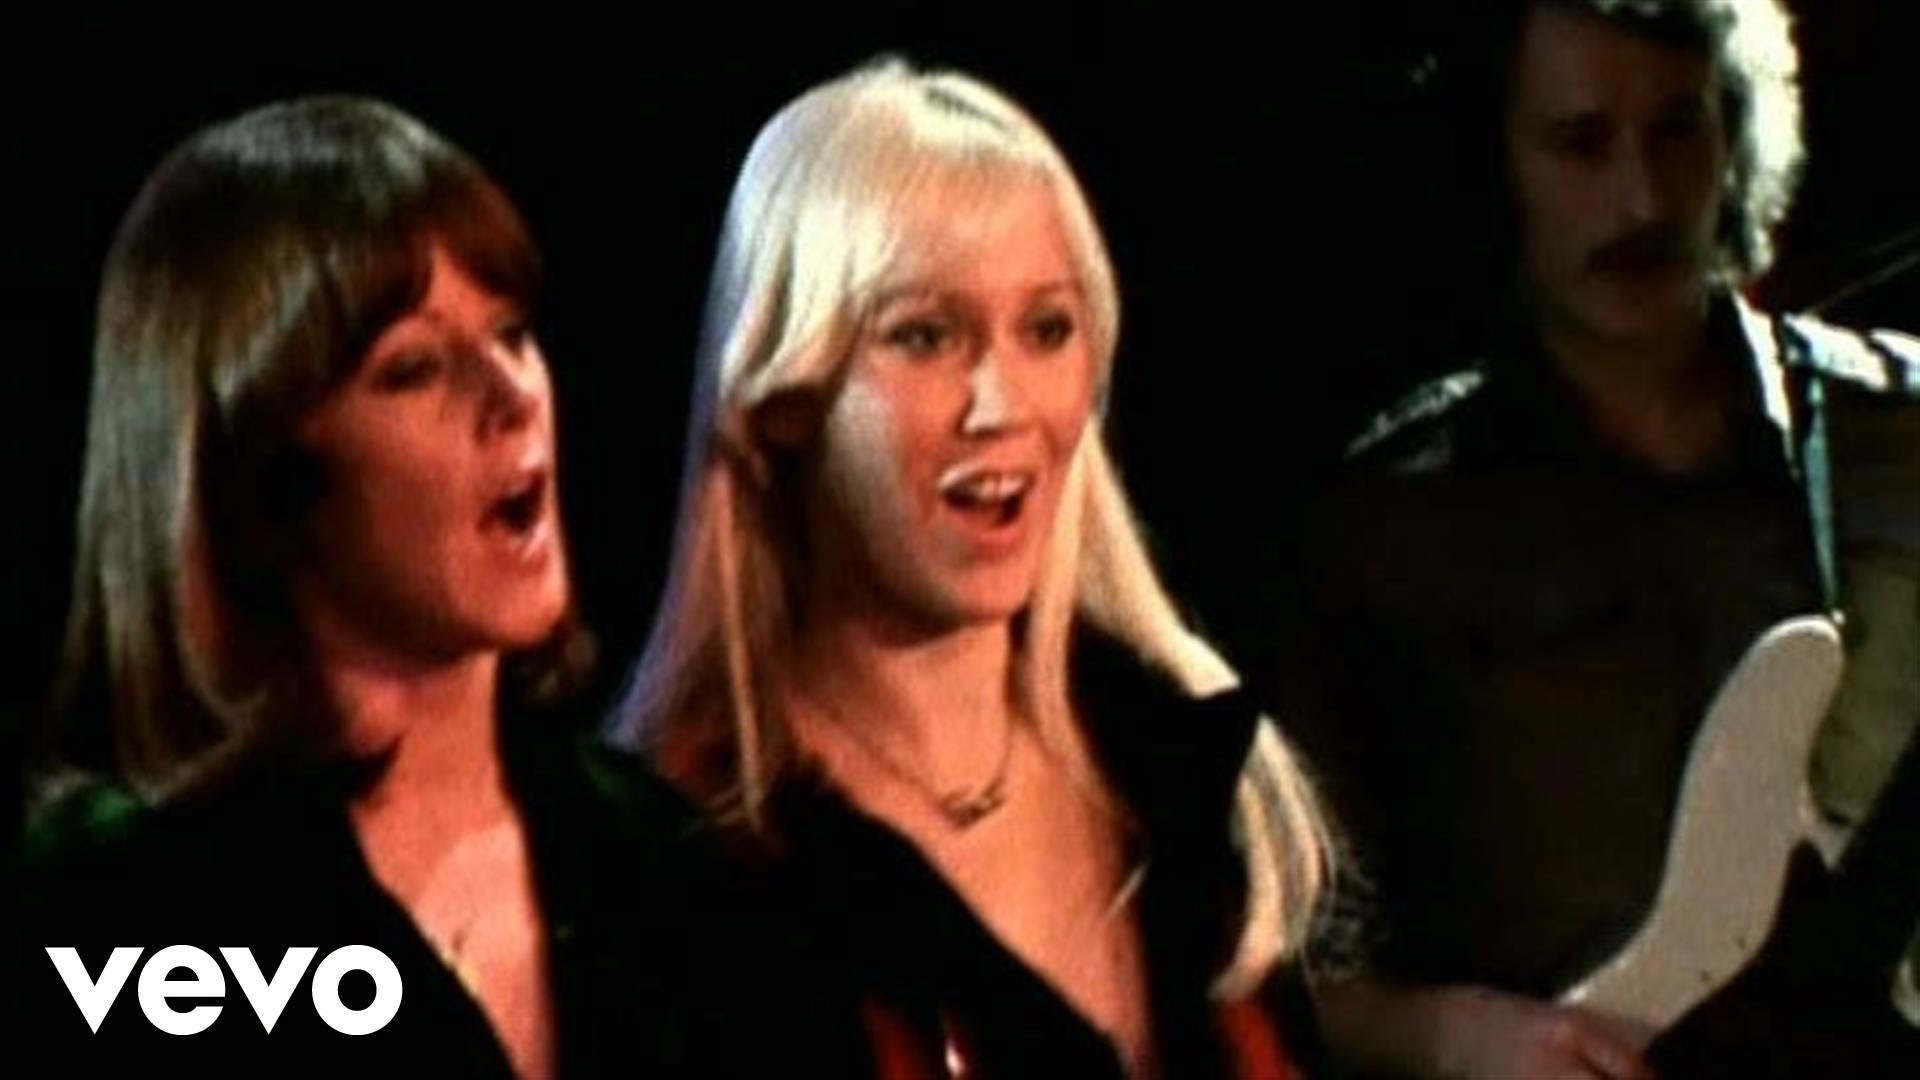 ABBA reveal studio reunion project, announce first new single since 1983